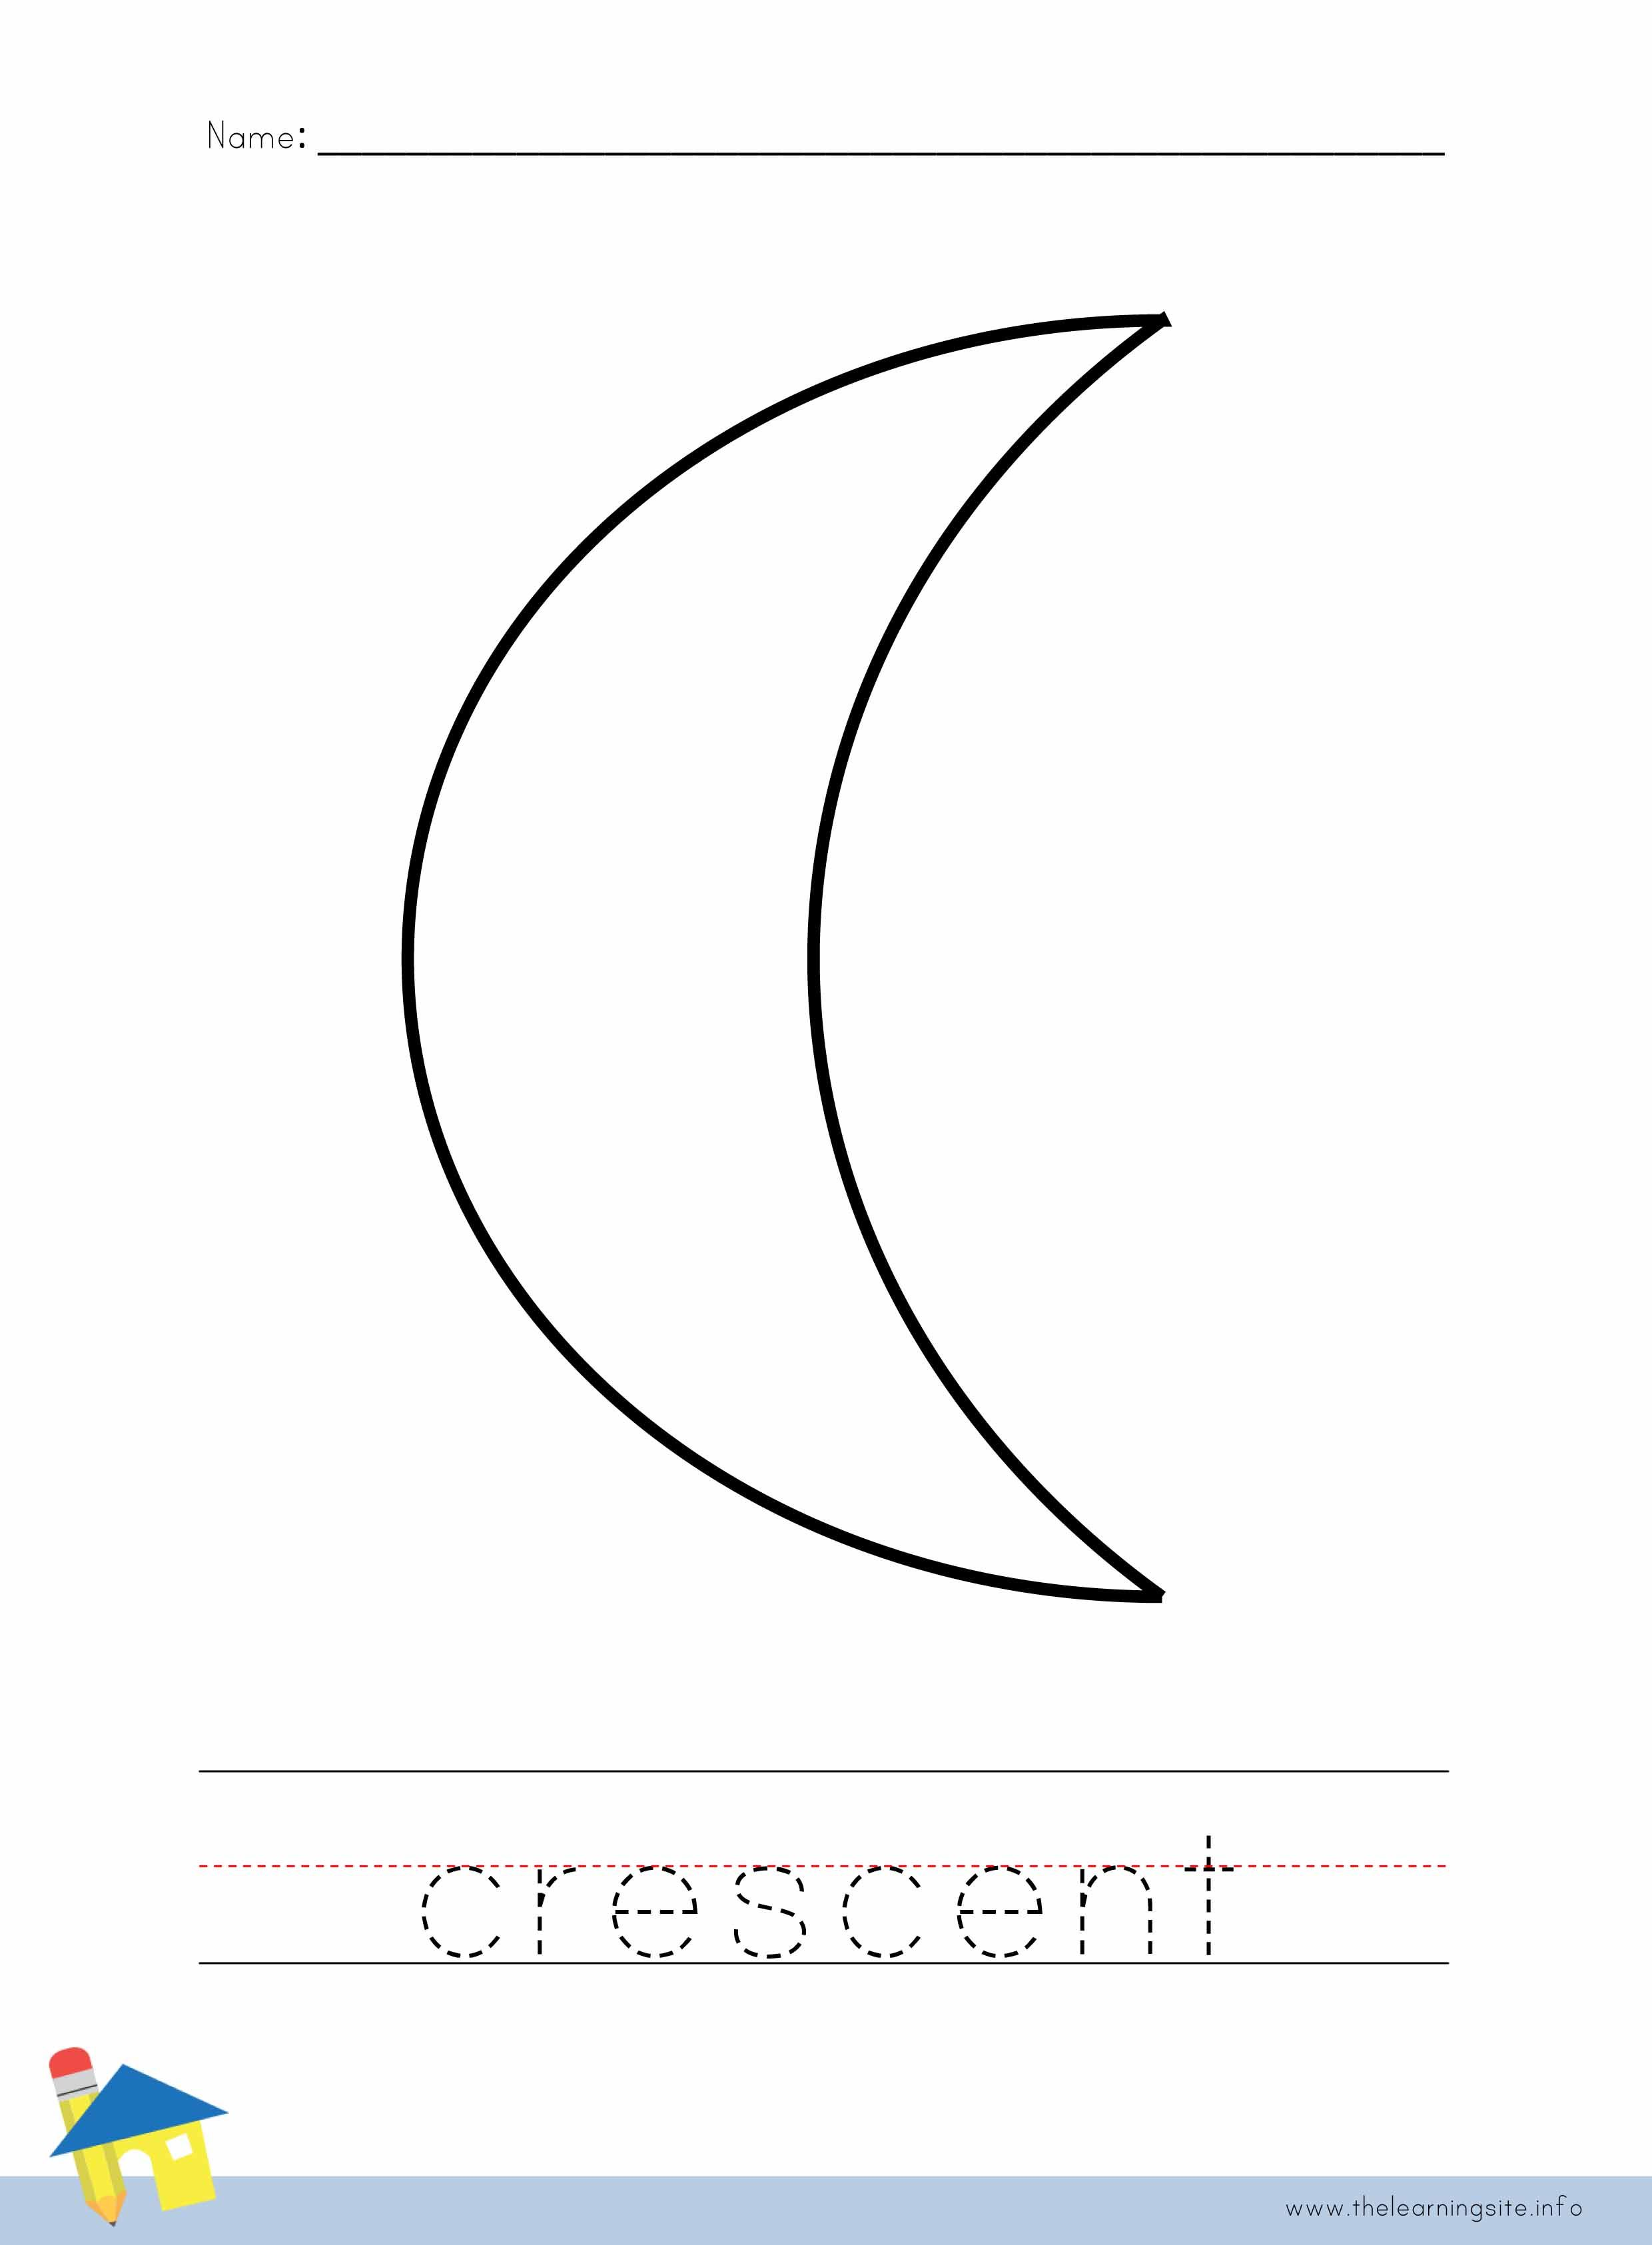 printable cresent shapes coloring pages - photo#31